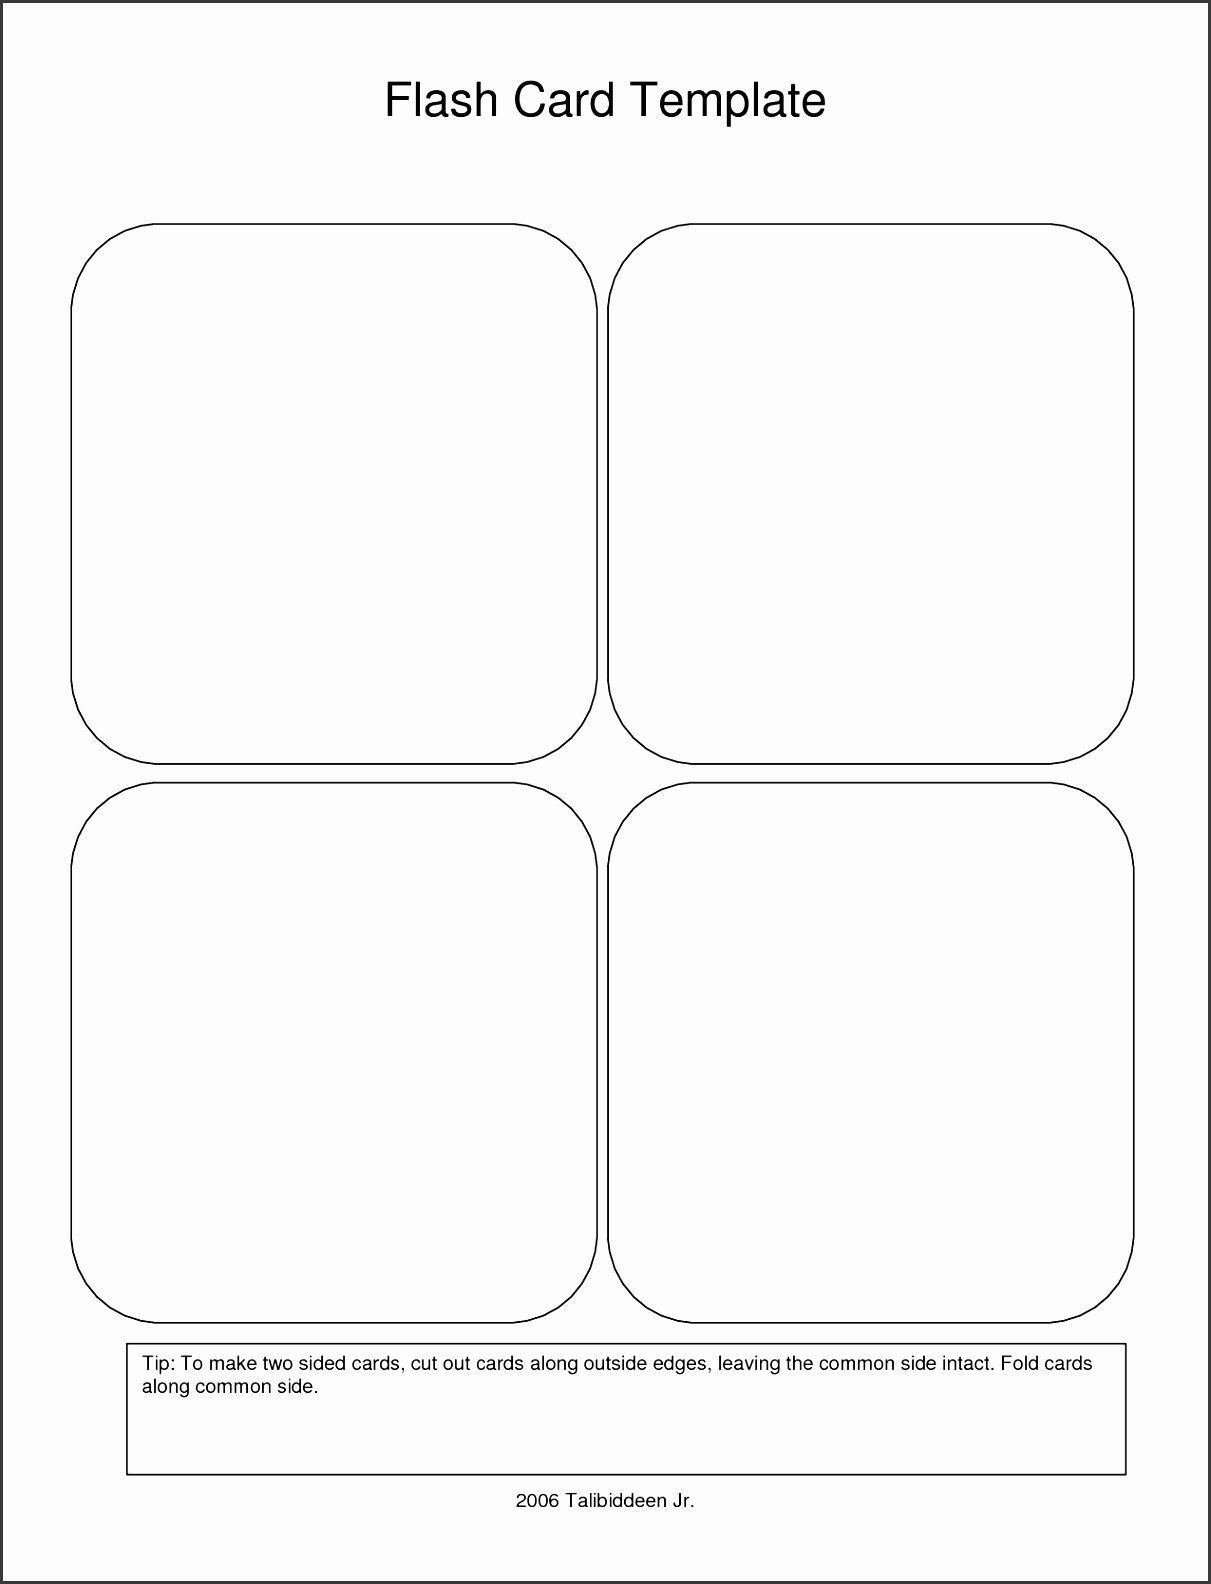 Printable Flash Card Template Fresh 9 Free Printable Flash Card Template Sampletemplatess